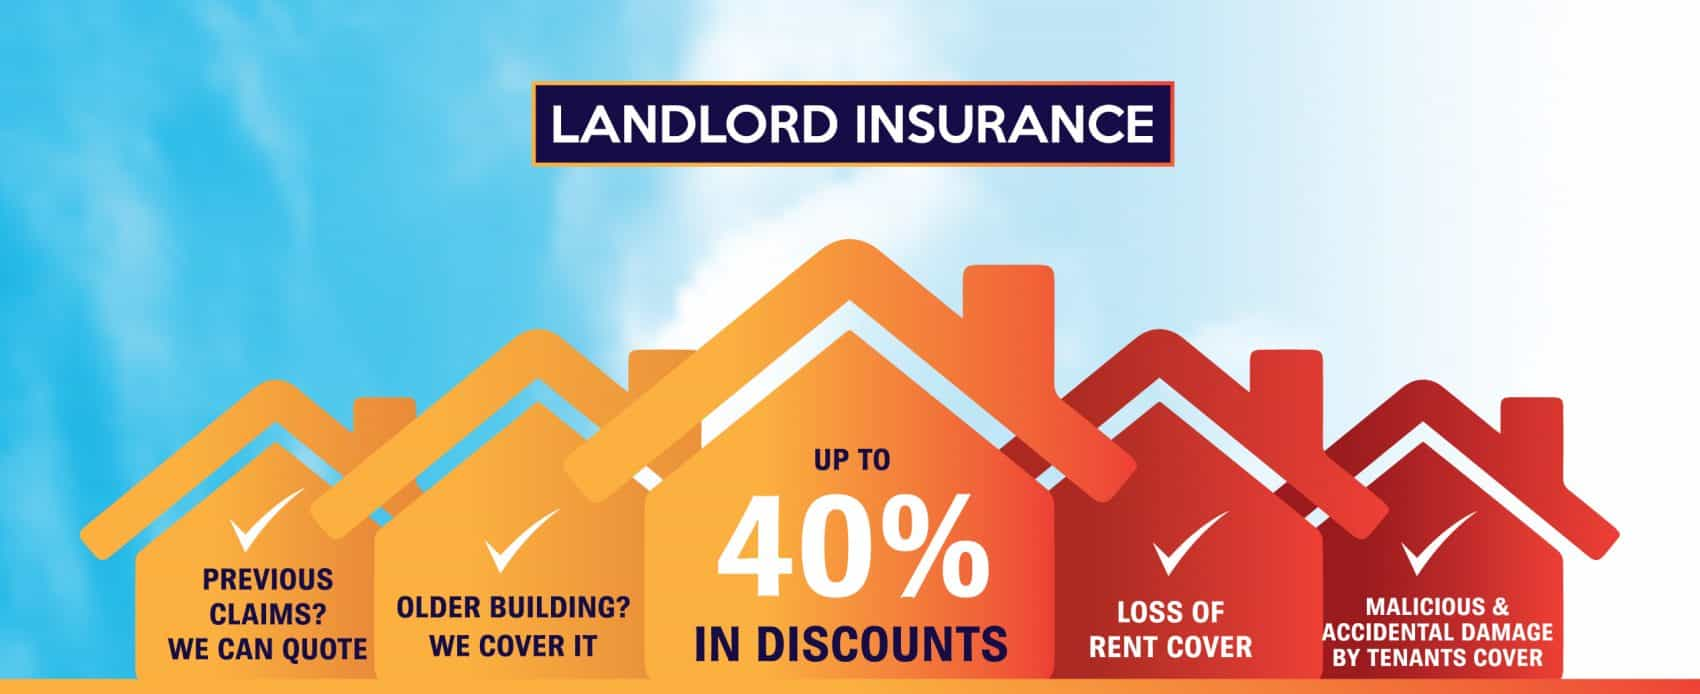 Landlord Insurance - Save up to 40% but keep 100% cover